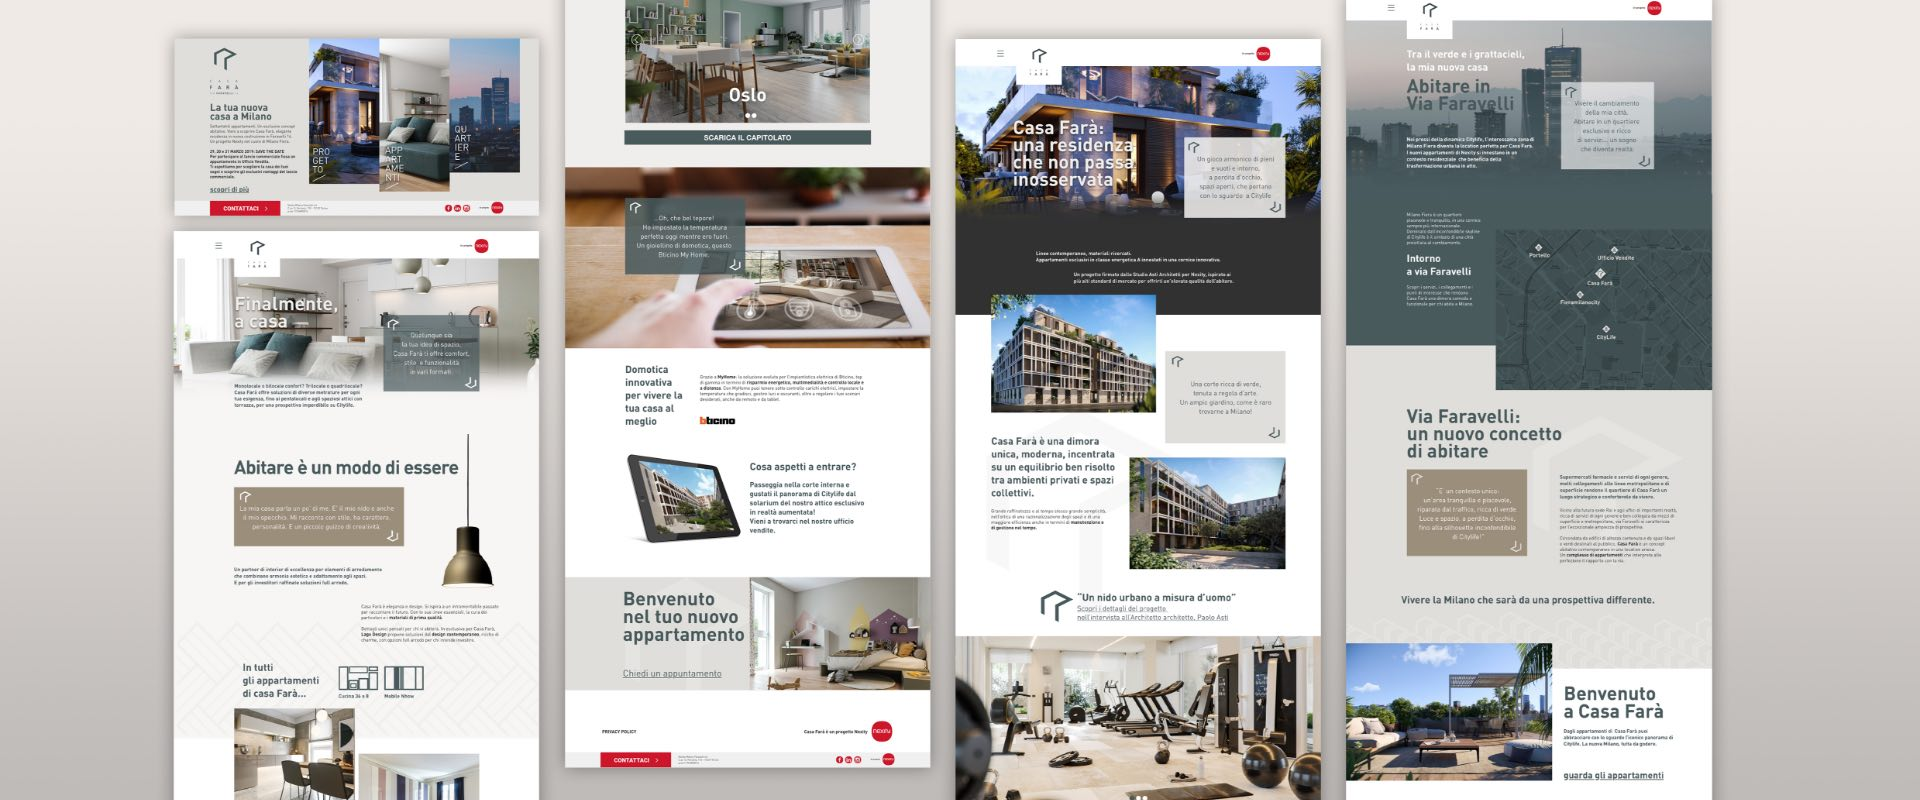 casa-fara.it is the mini website for real estate group Nexity Italia